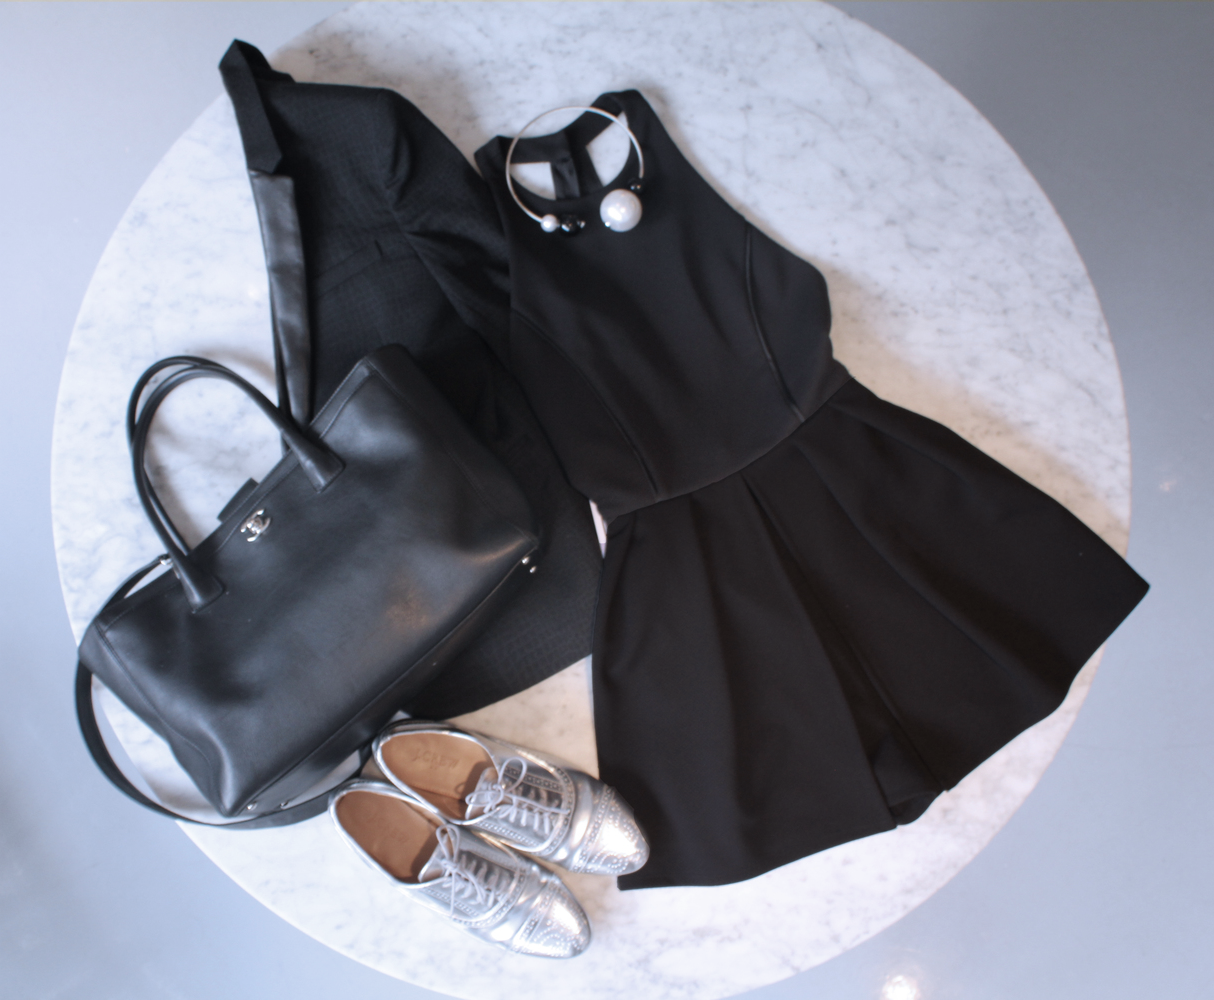 Looking for that romper that fits your work wardrobe? Vanity Room has plenty, this classic black romper paired with a great necklace piece really ties the outfit together. Always make sure you have that outerwear accessory, like this black blazer just in case of those chilly spring breezes.  A cute pair of shoes is a must, and these silver oxfords go perfectly.